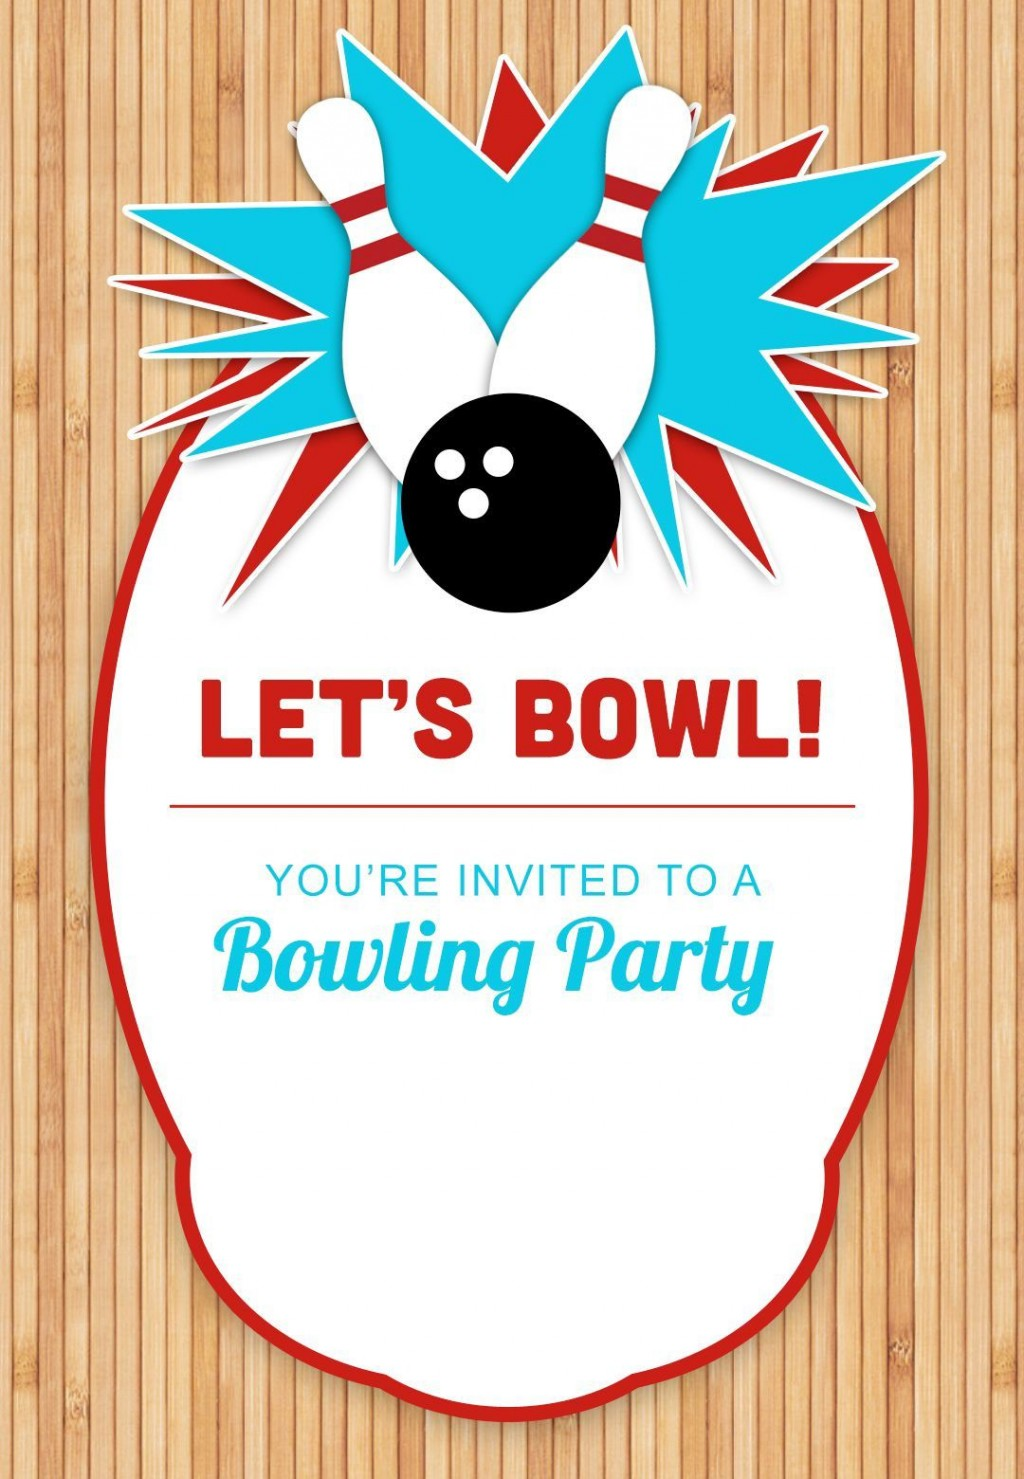 003 Marvelou Bowling Party Invite Printable Free Sample  Birthday Invitation GirlLarge